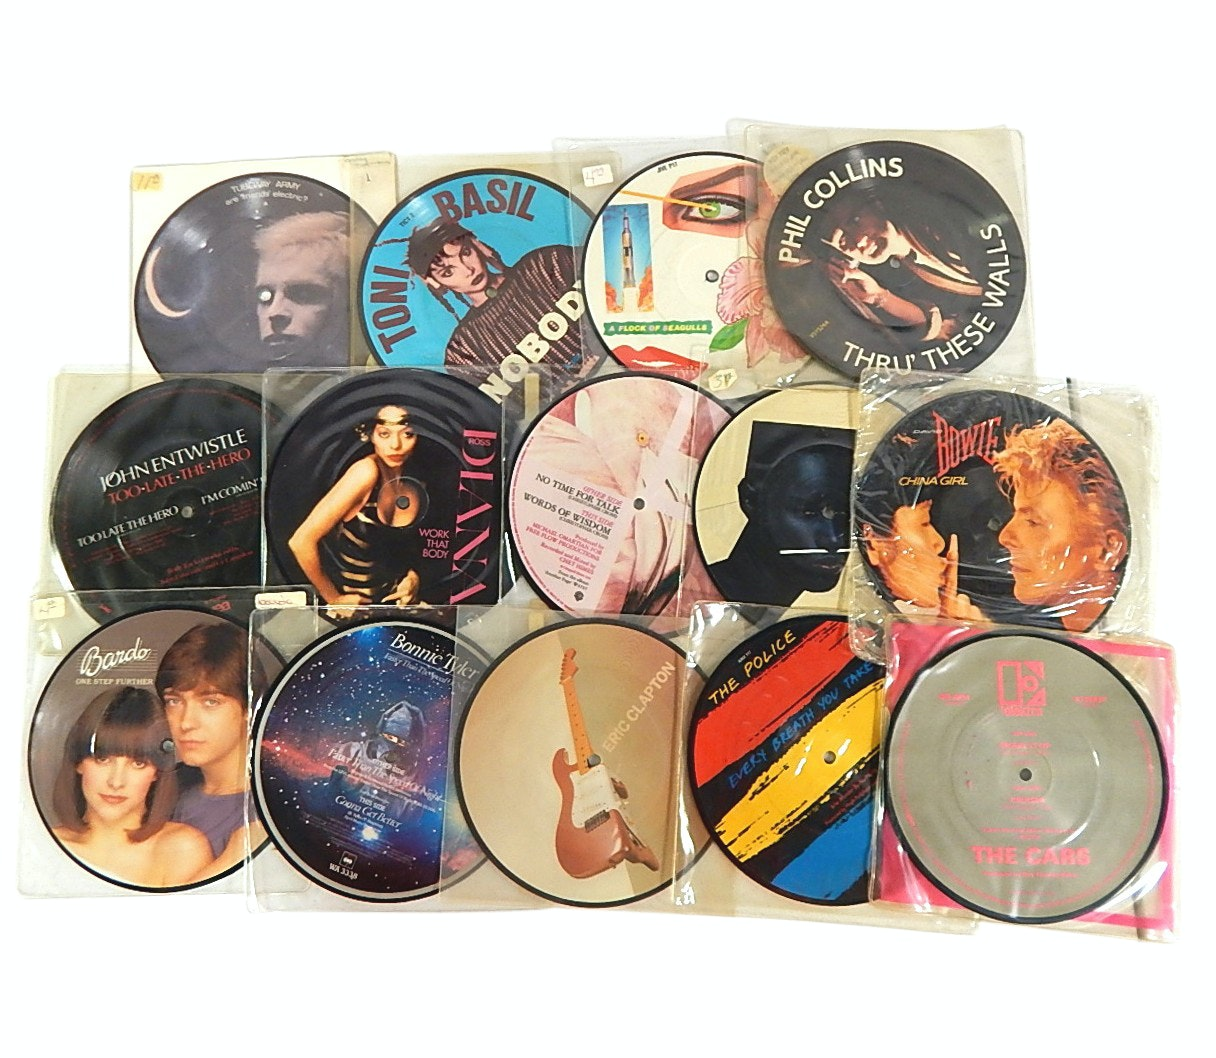 1980s 45 RPM Picture Discs with Bowie, The Cars, The Police, More